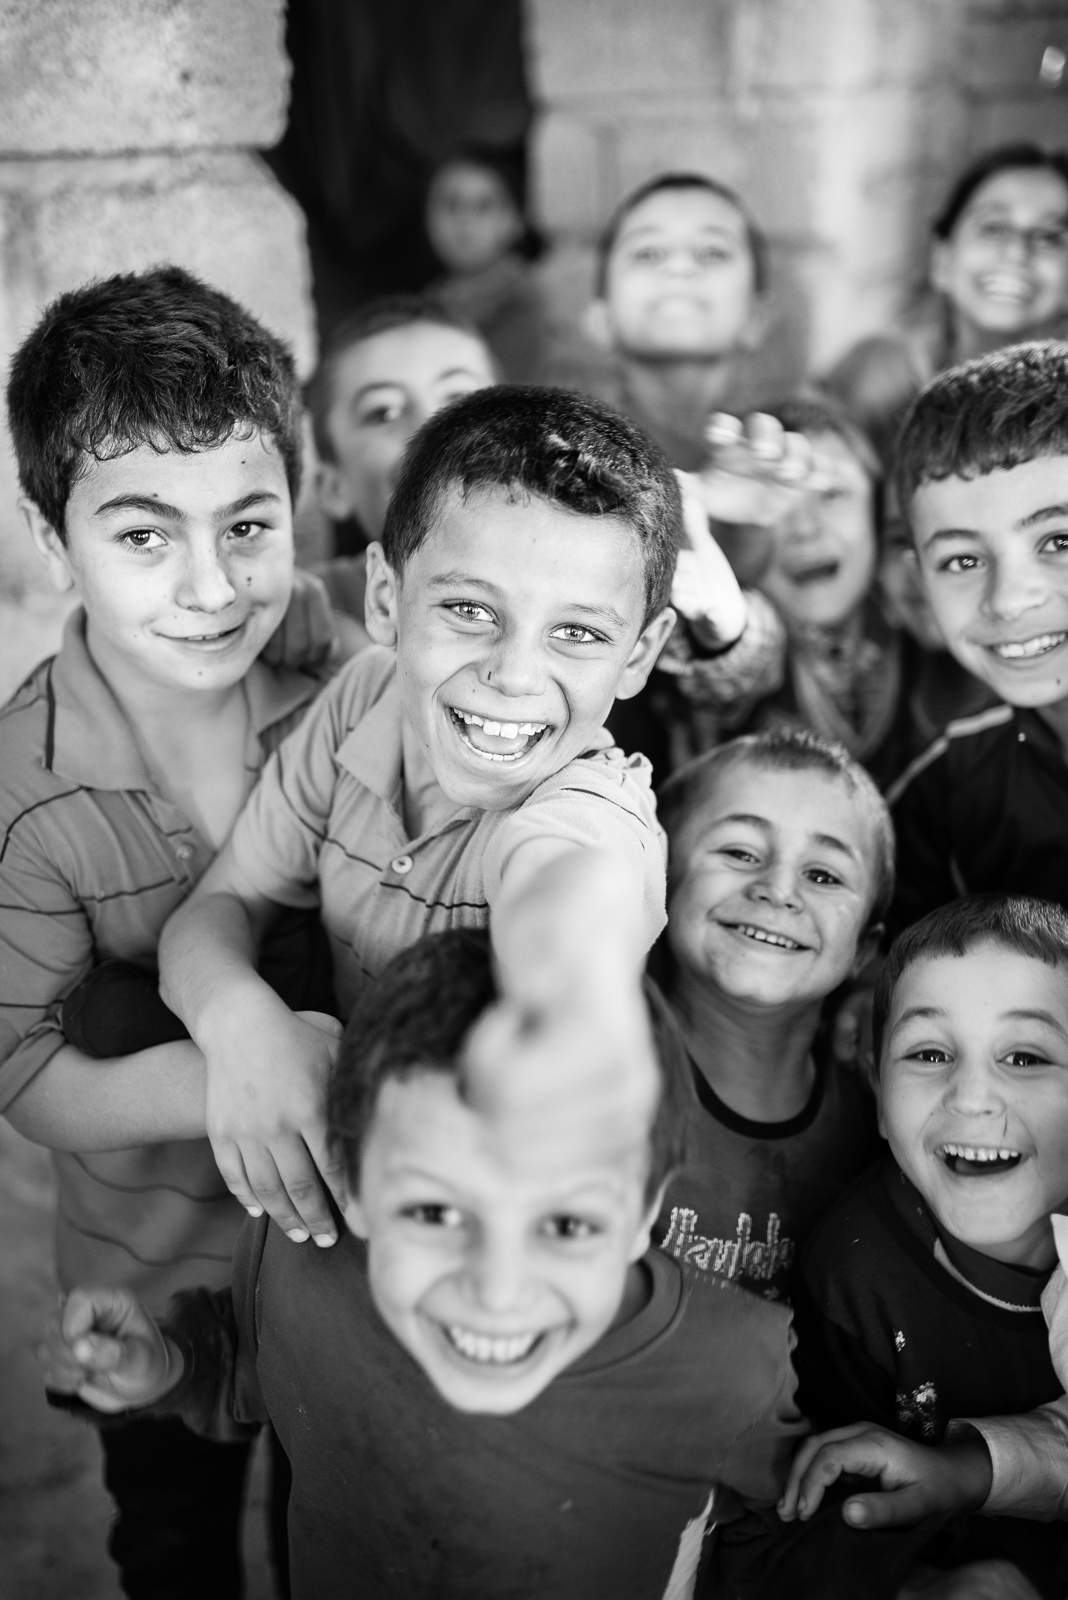 Happiness of children in Zakho under construction building